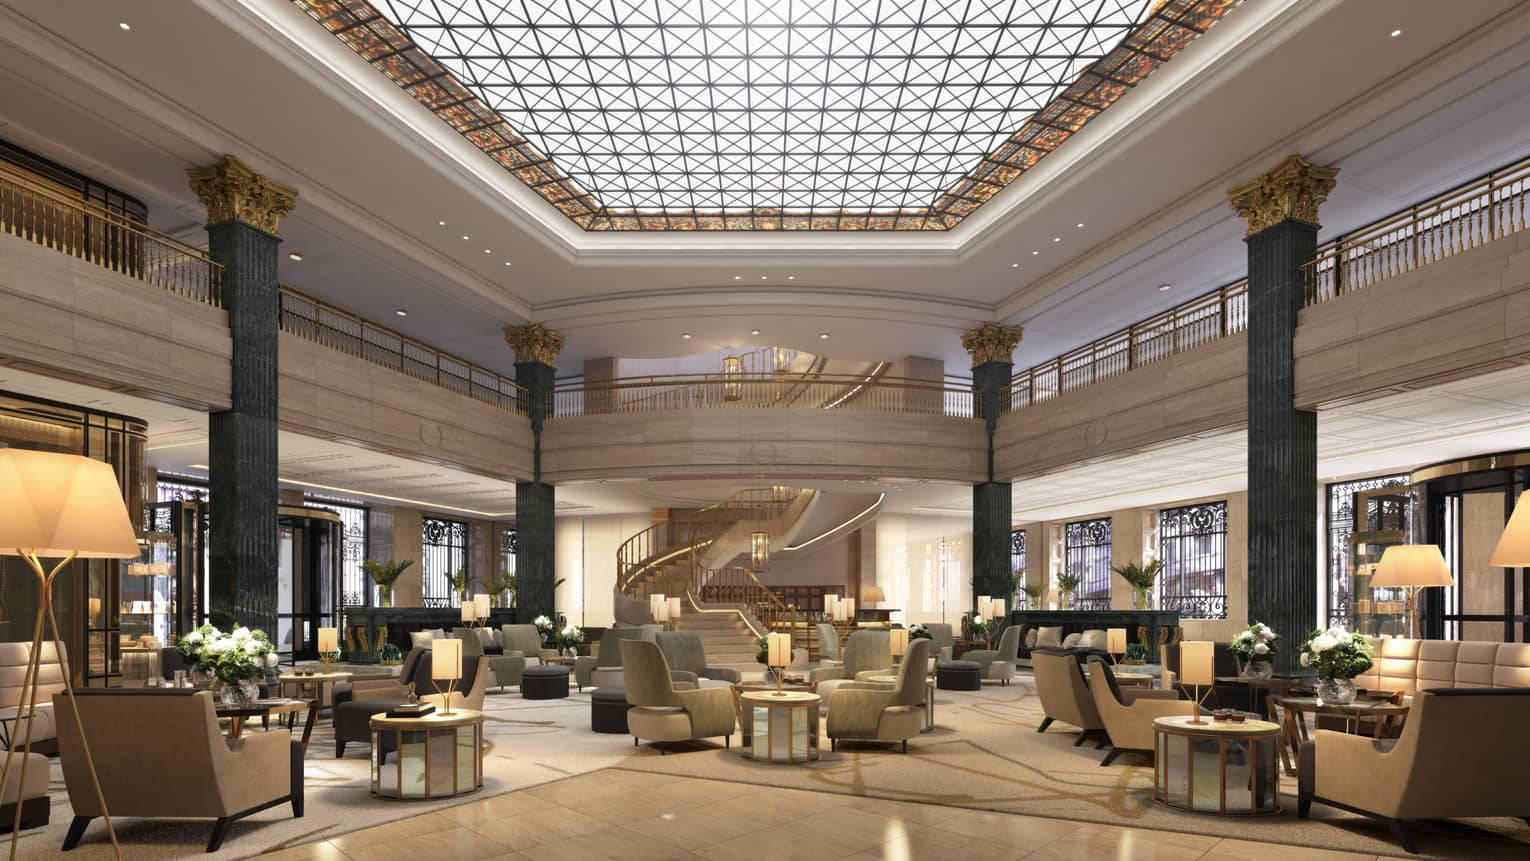 Four seasons hotel madrid's lobby is lit up by a large panel of skylights, and full of modern, chic sitting areas